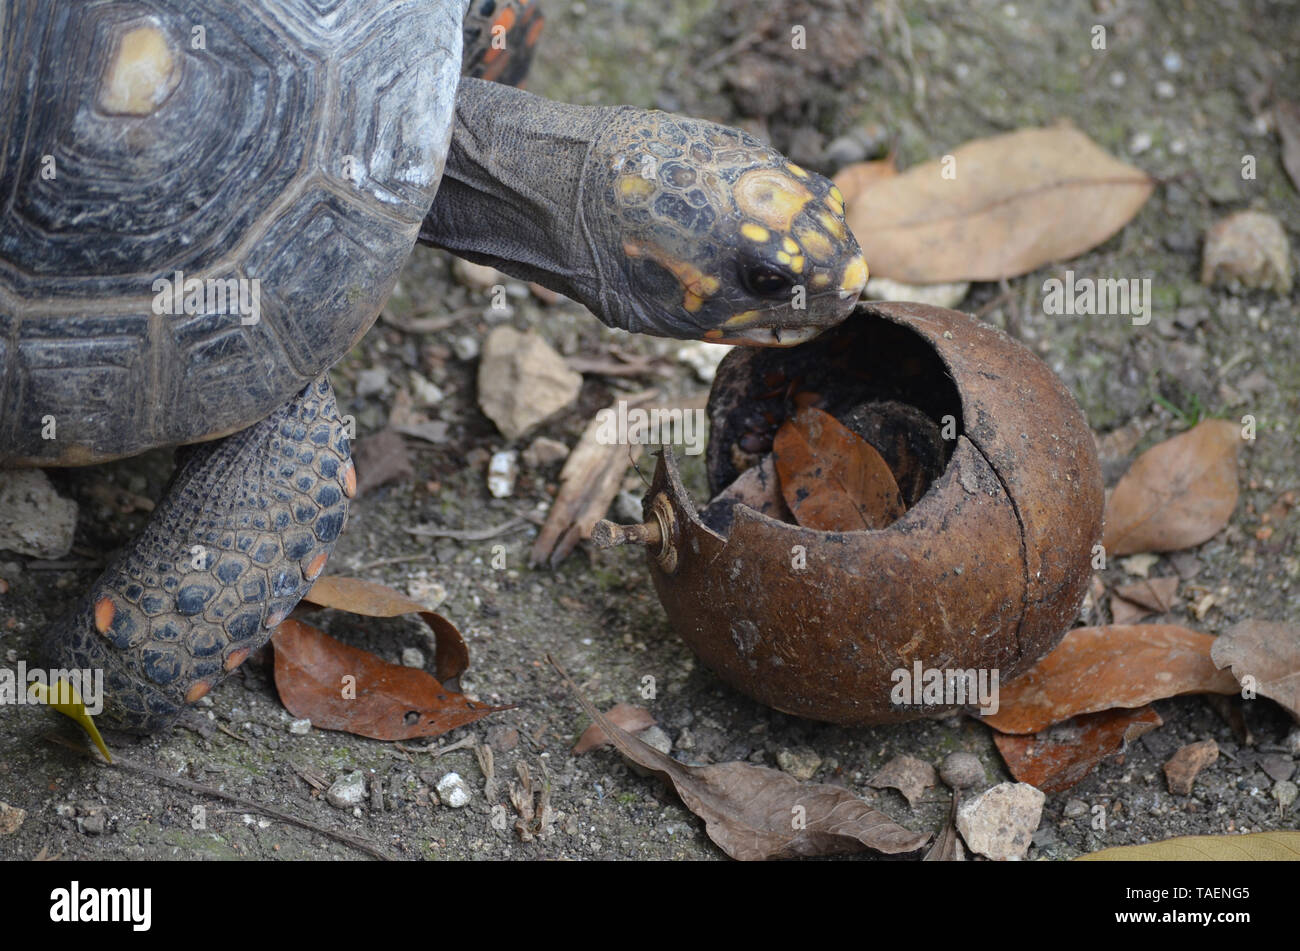 Red-footed tortoise (Chelonoidis carbonaria) kept in captivity at Quinta de los Molinos garden (Havana, Cuba) - Stock Image